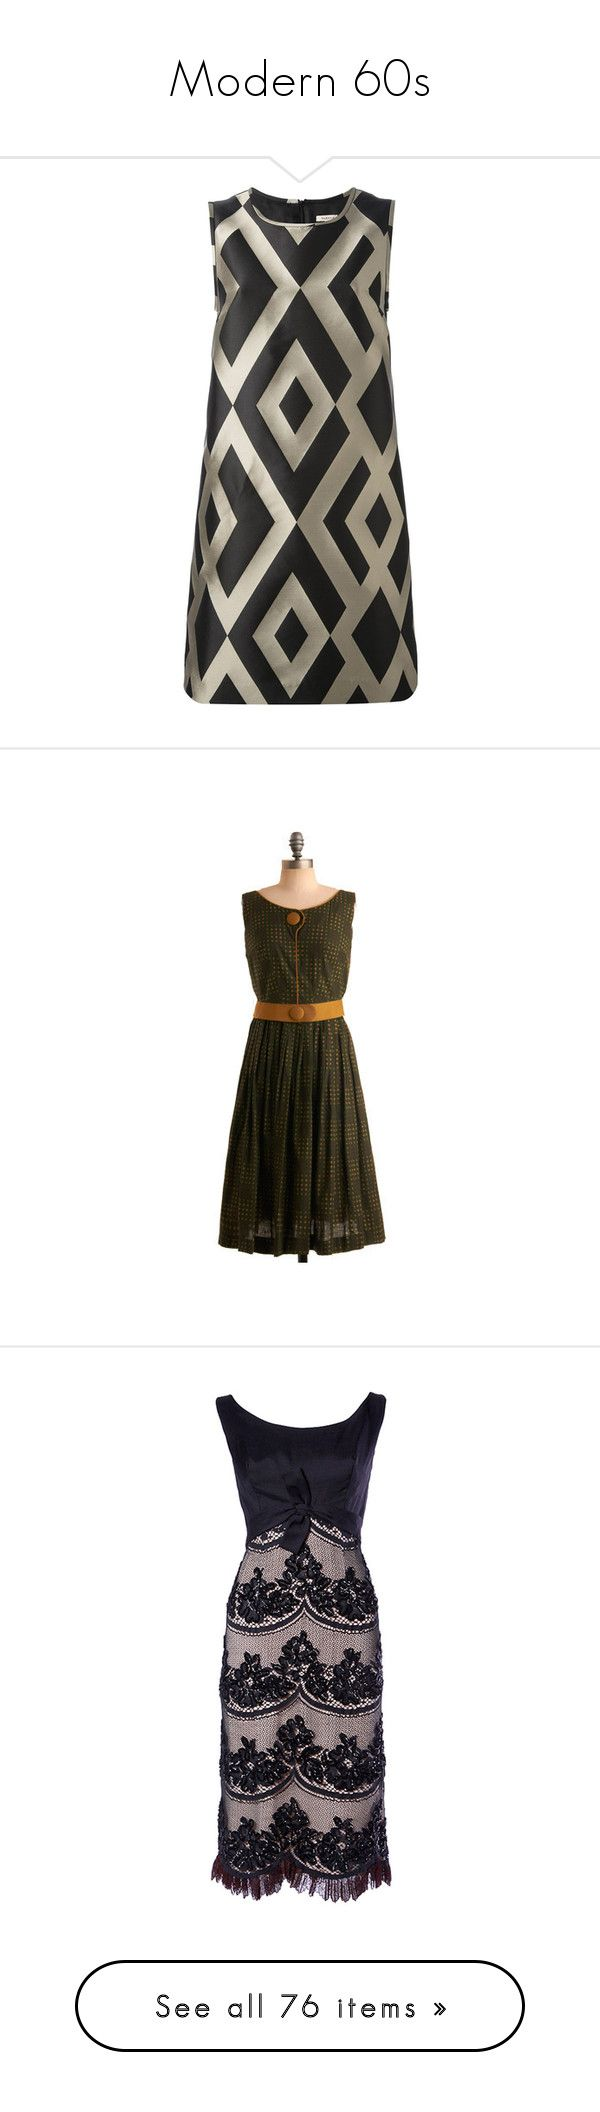 """Modern 60s"" by magical-muse ❤ liked on Polyvore featuring dresses, vestidos, brown, sleeveless dress, straight dresses, sleeveless a line dress, a-line dresses, zip back dress, vintage and brown vintage dress"